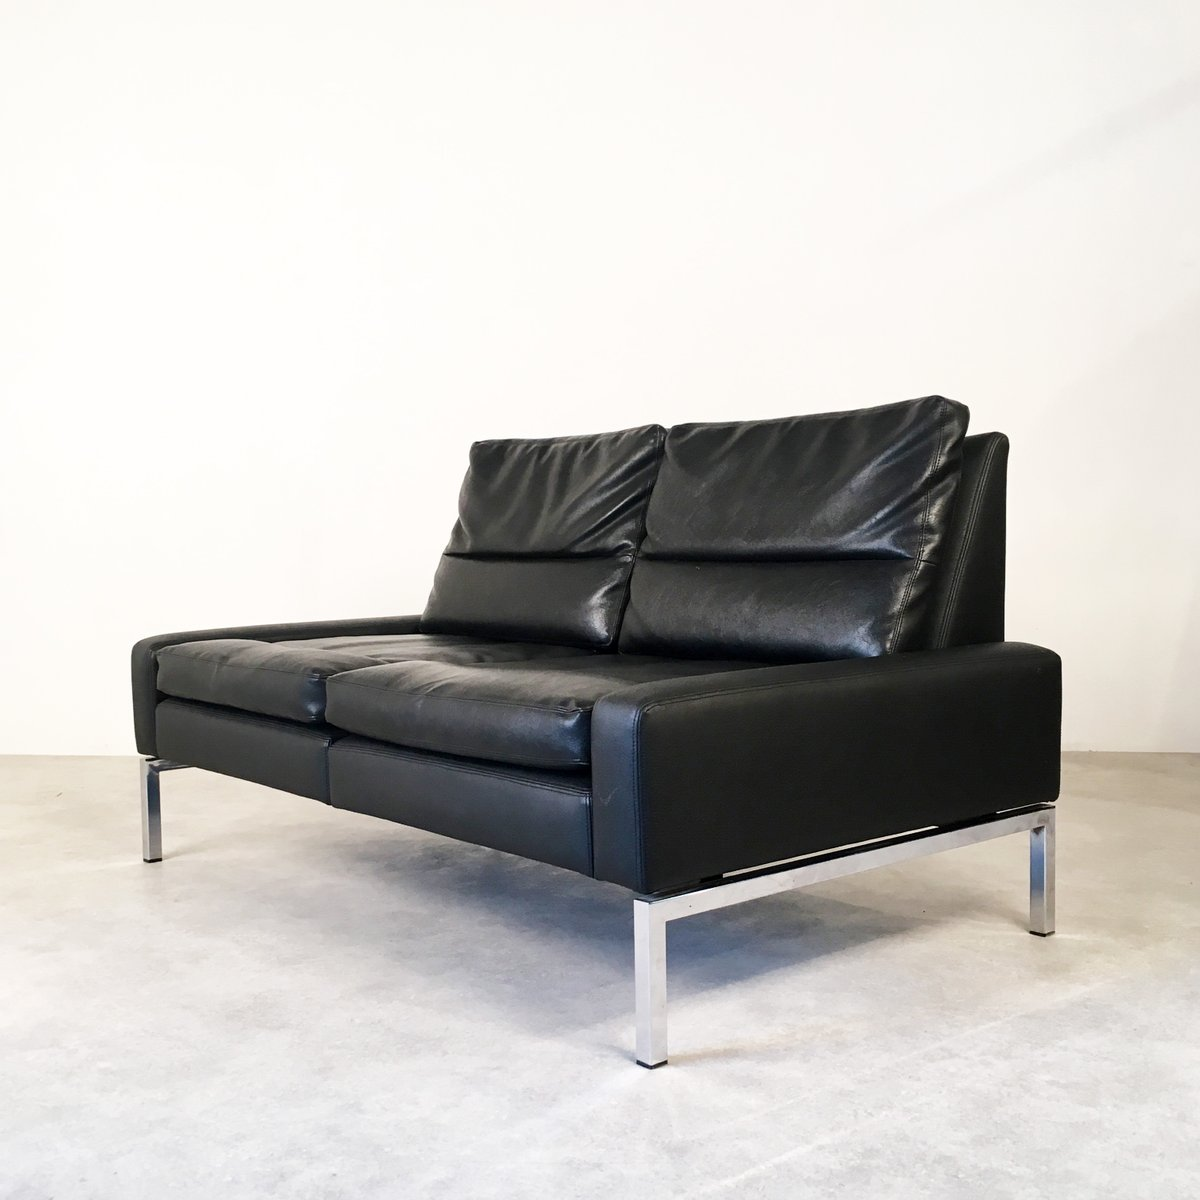 Sofa by hans peter piel for wilkhahn for sale at pamono - Sofa piel vintage ...